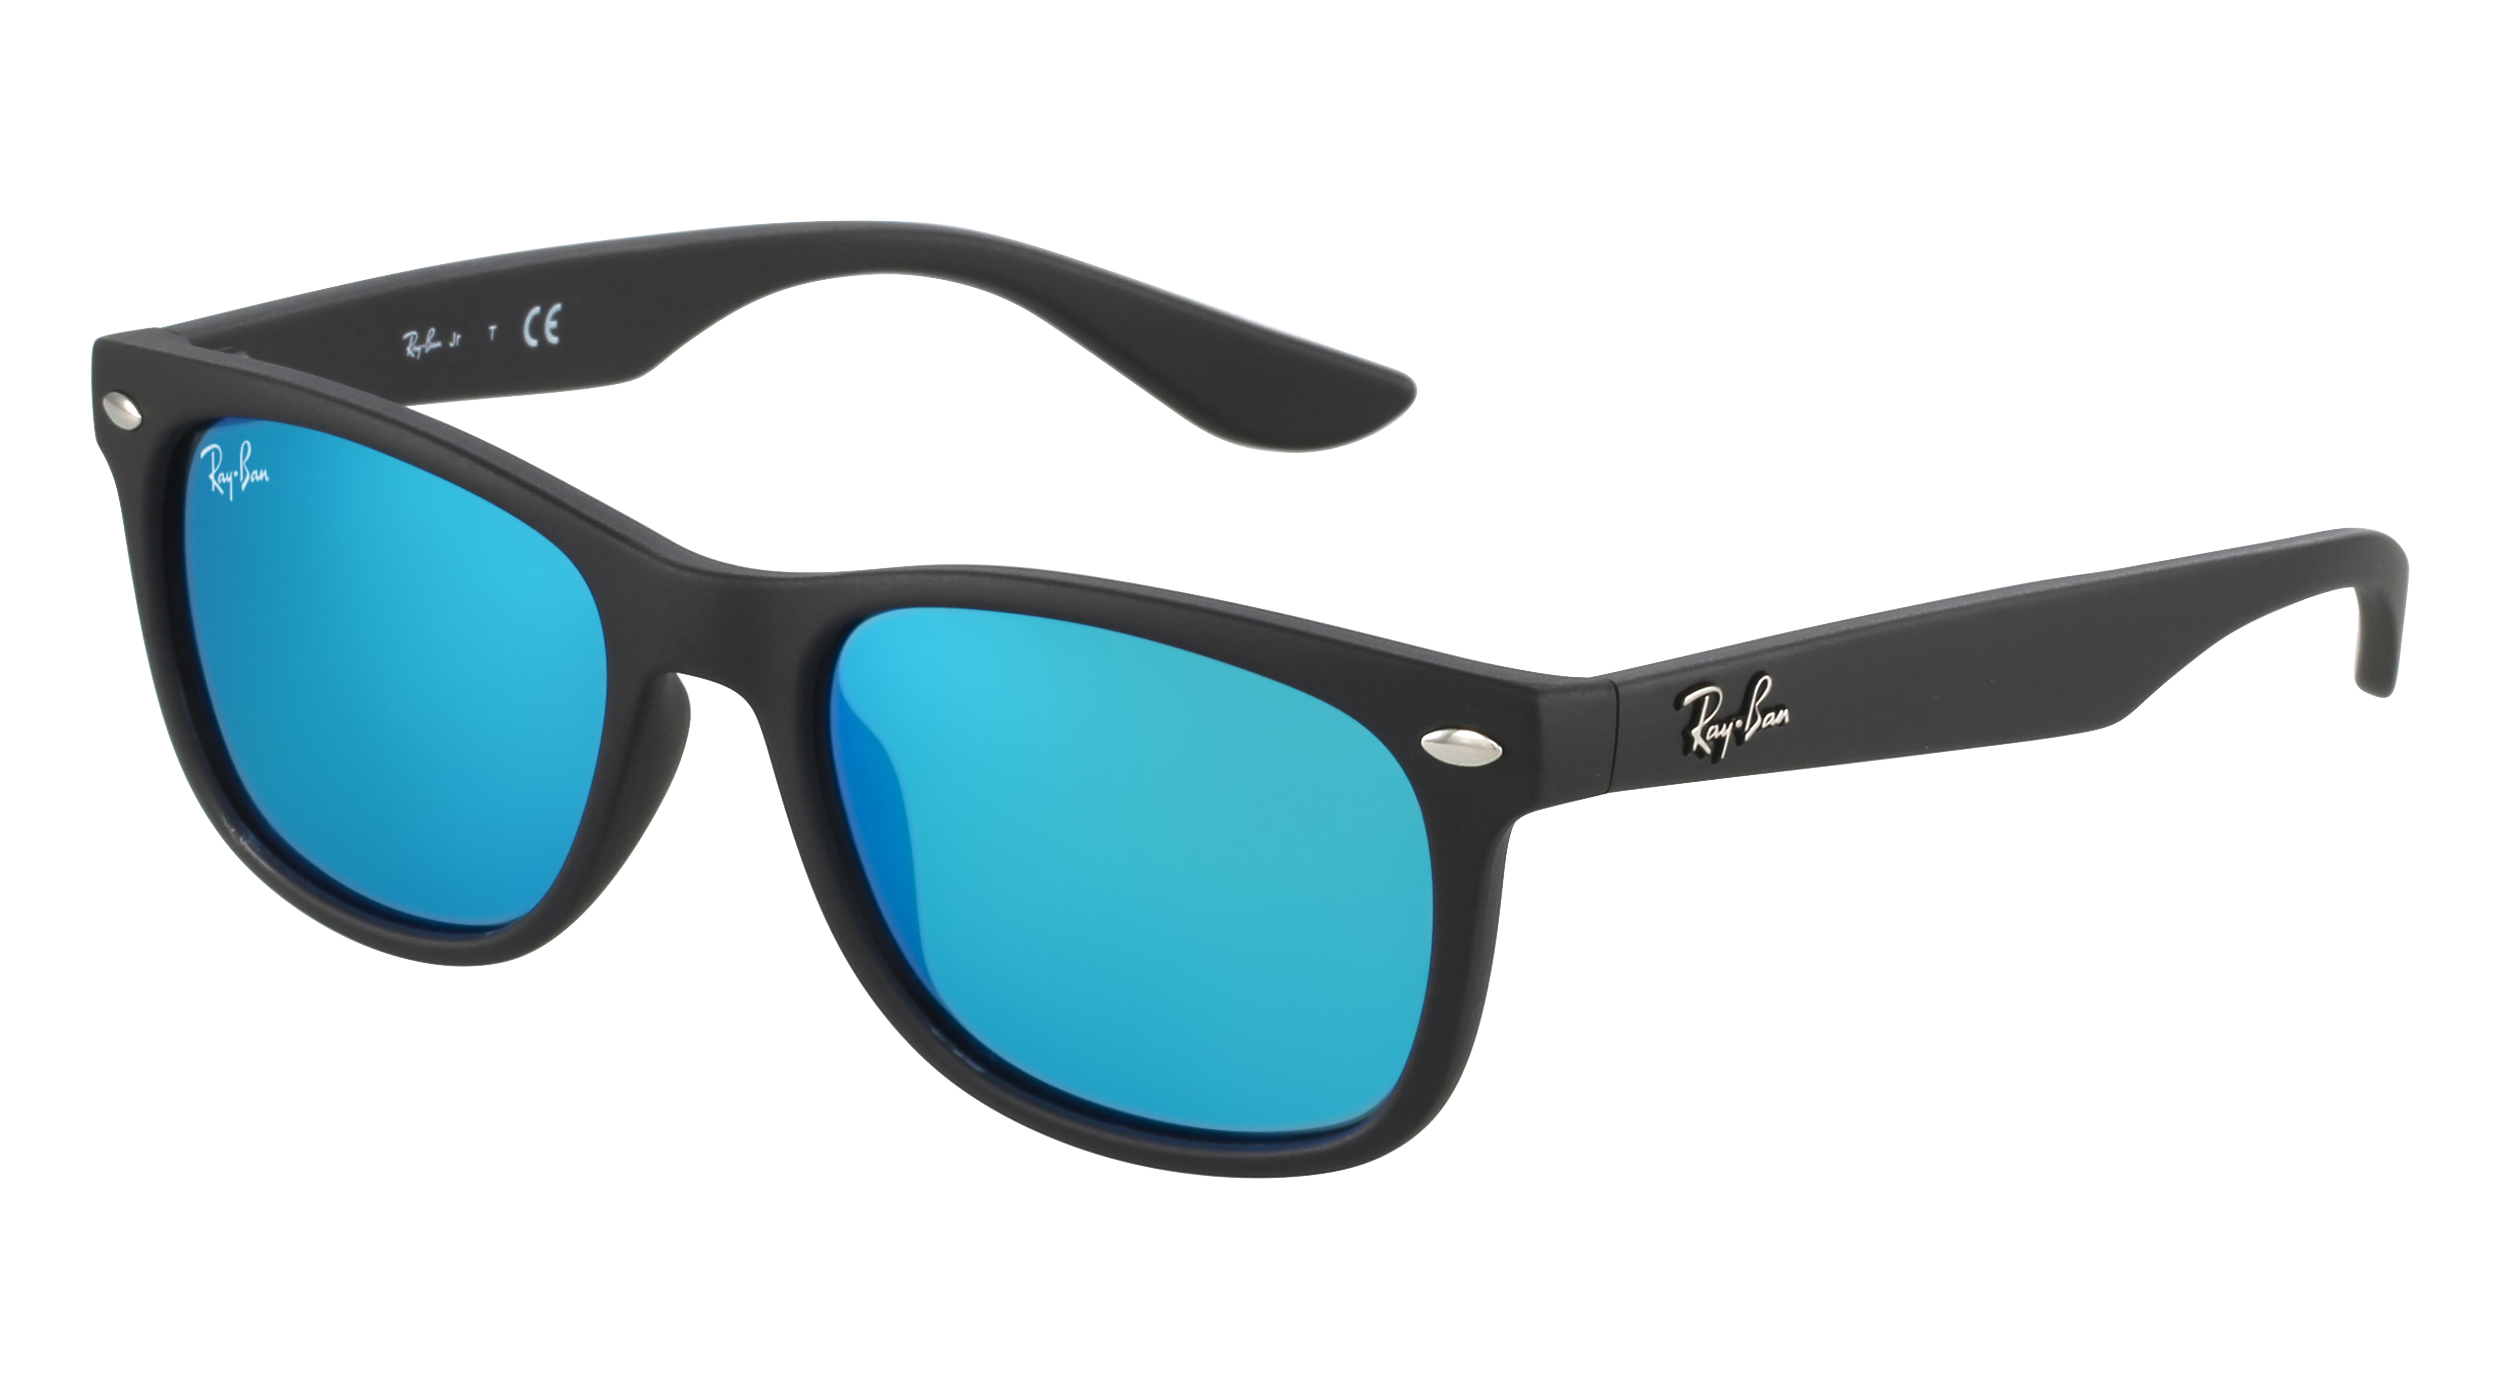 Ray-Ban RJ9052S-S-100S55-48-16-145